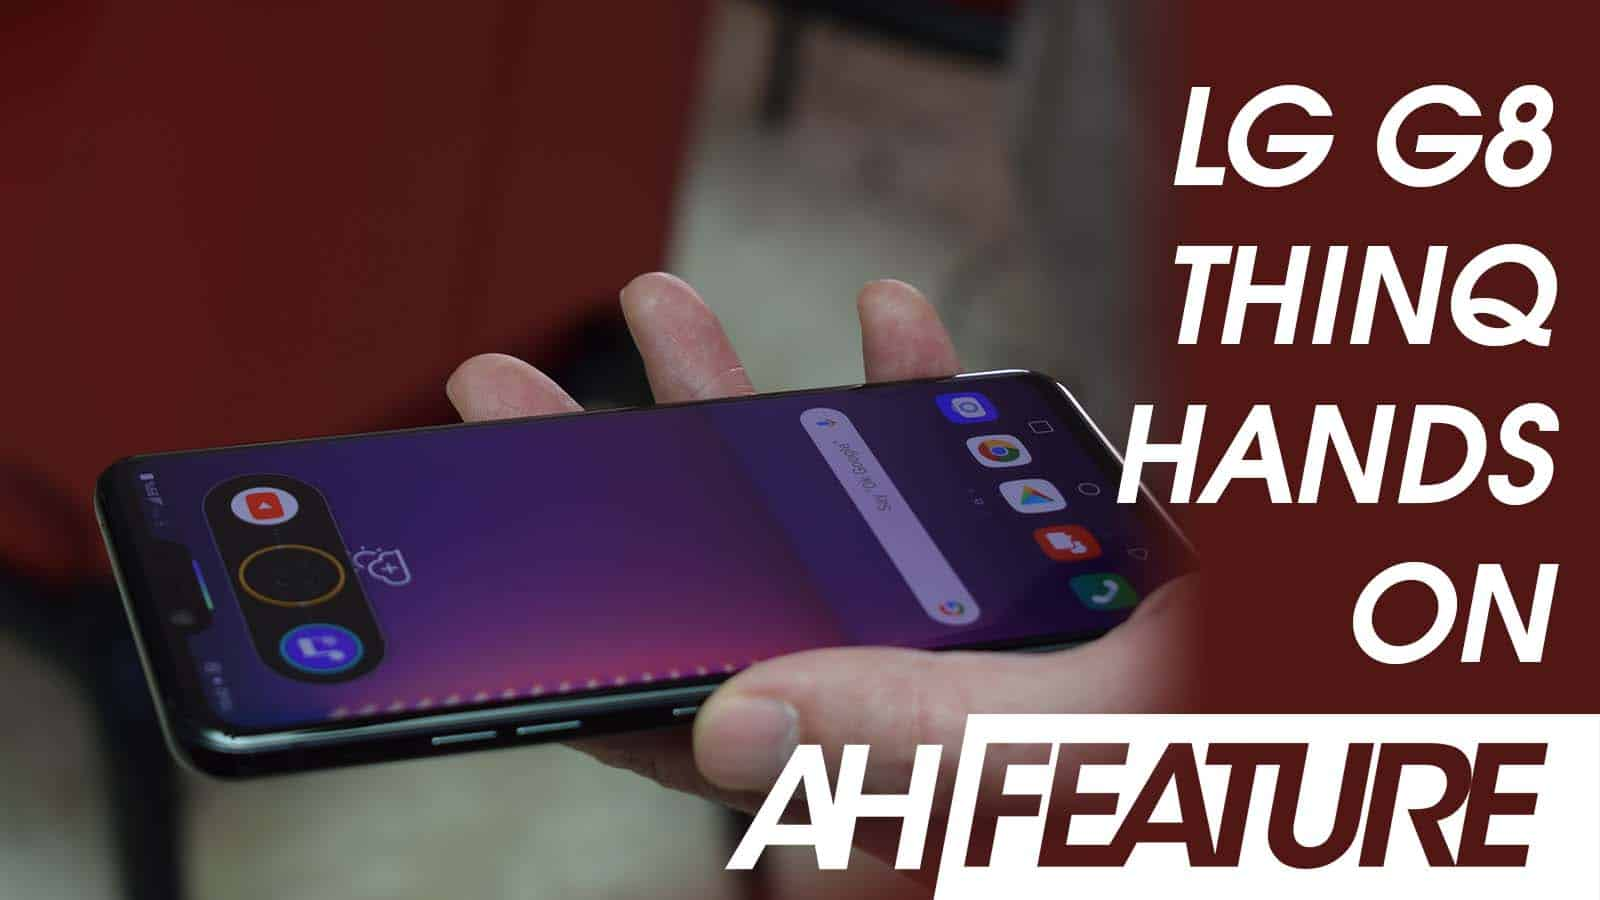 LG G8 ThinQ Hands On